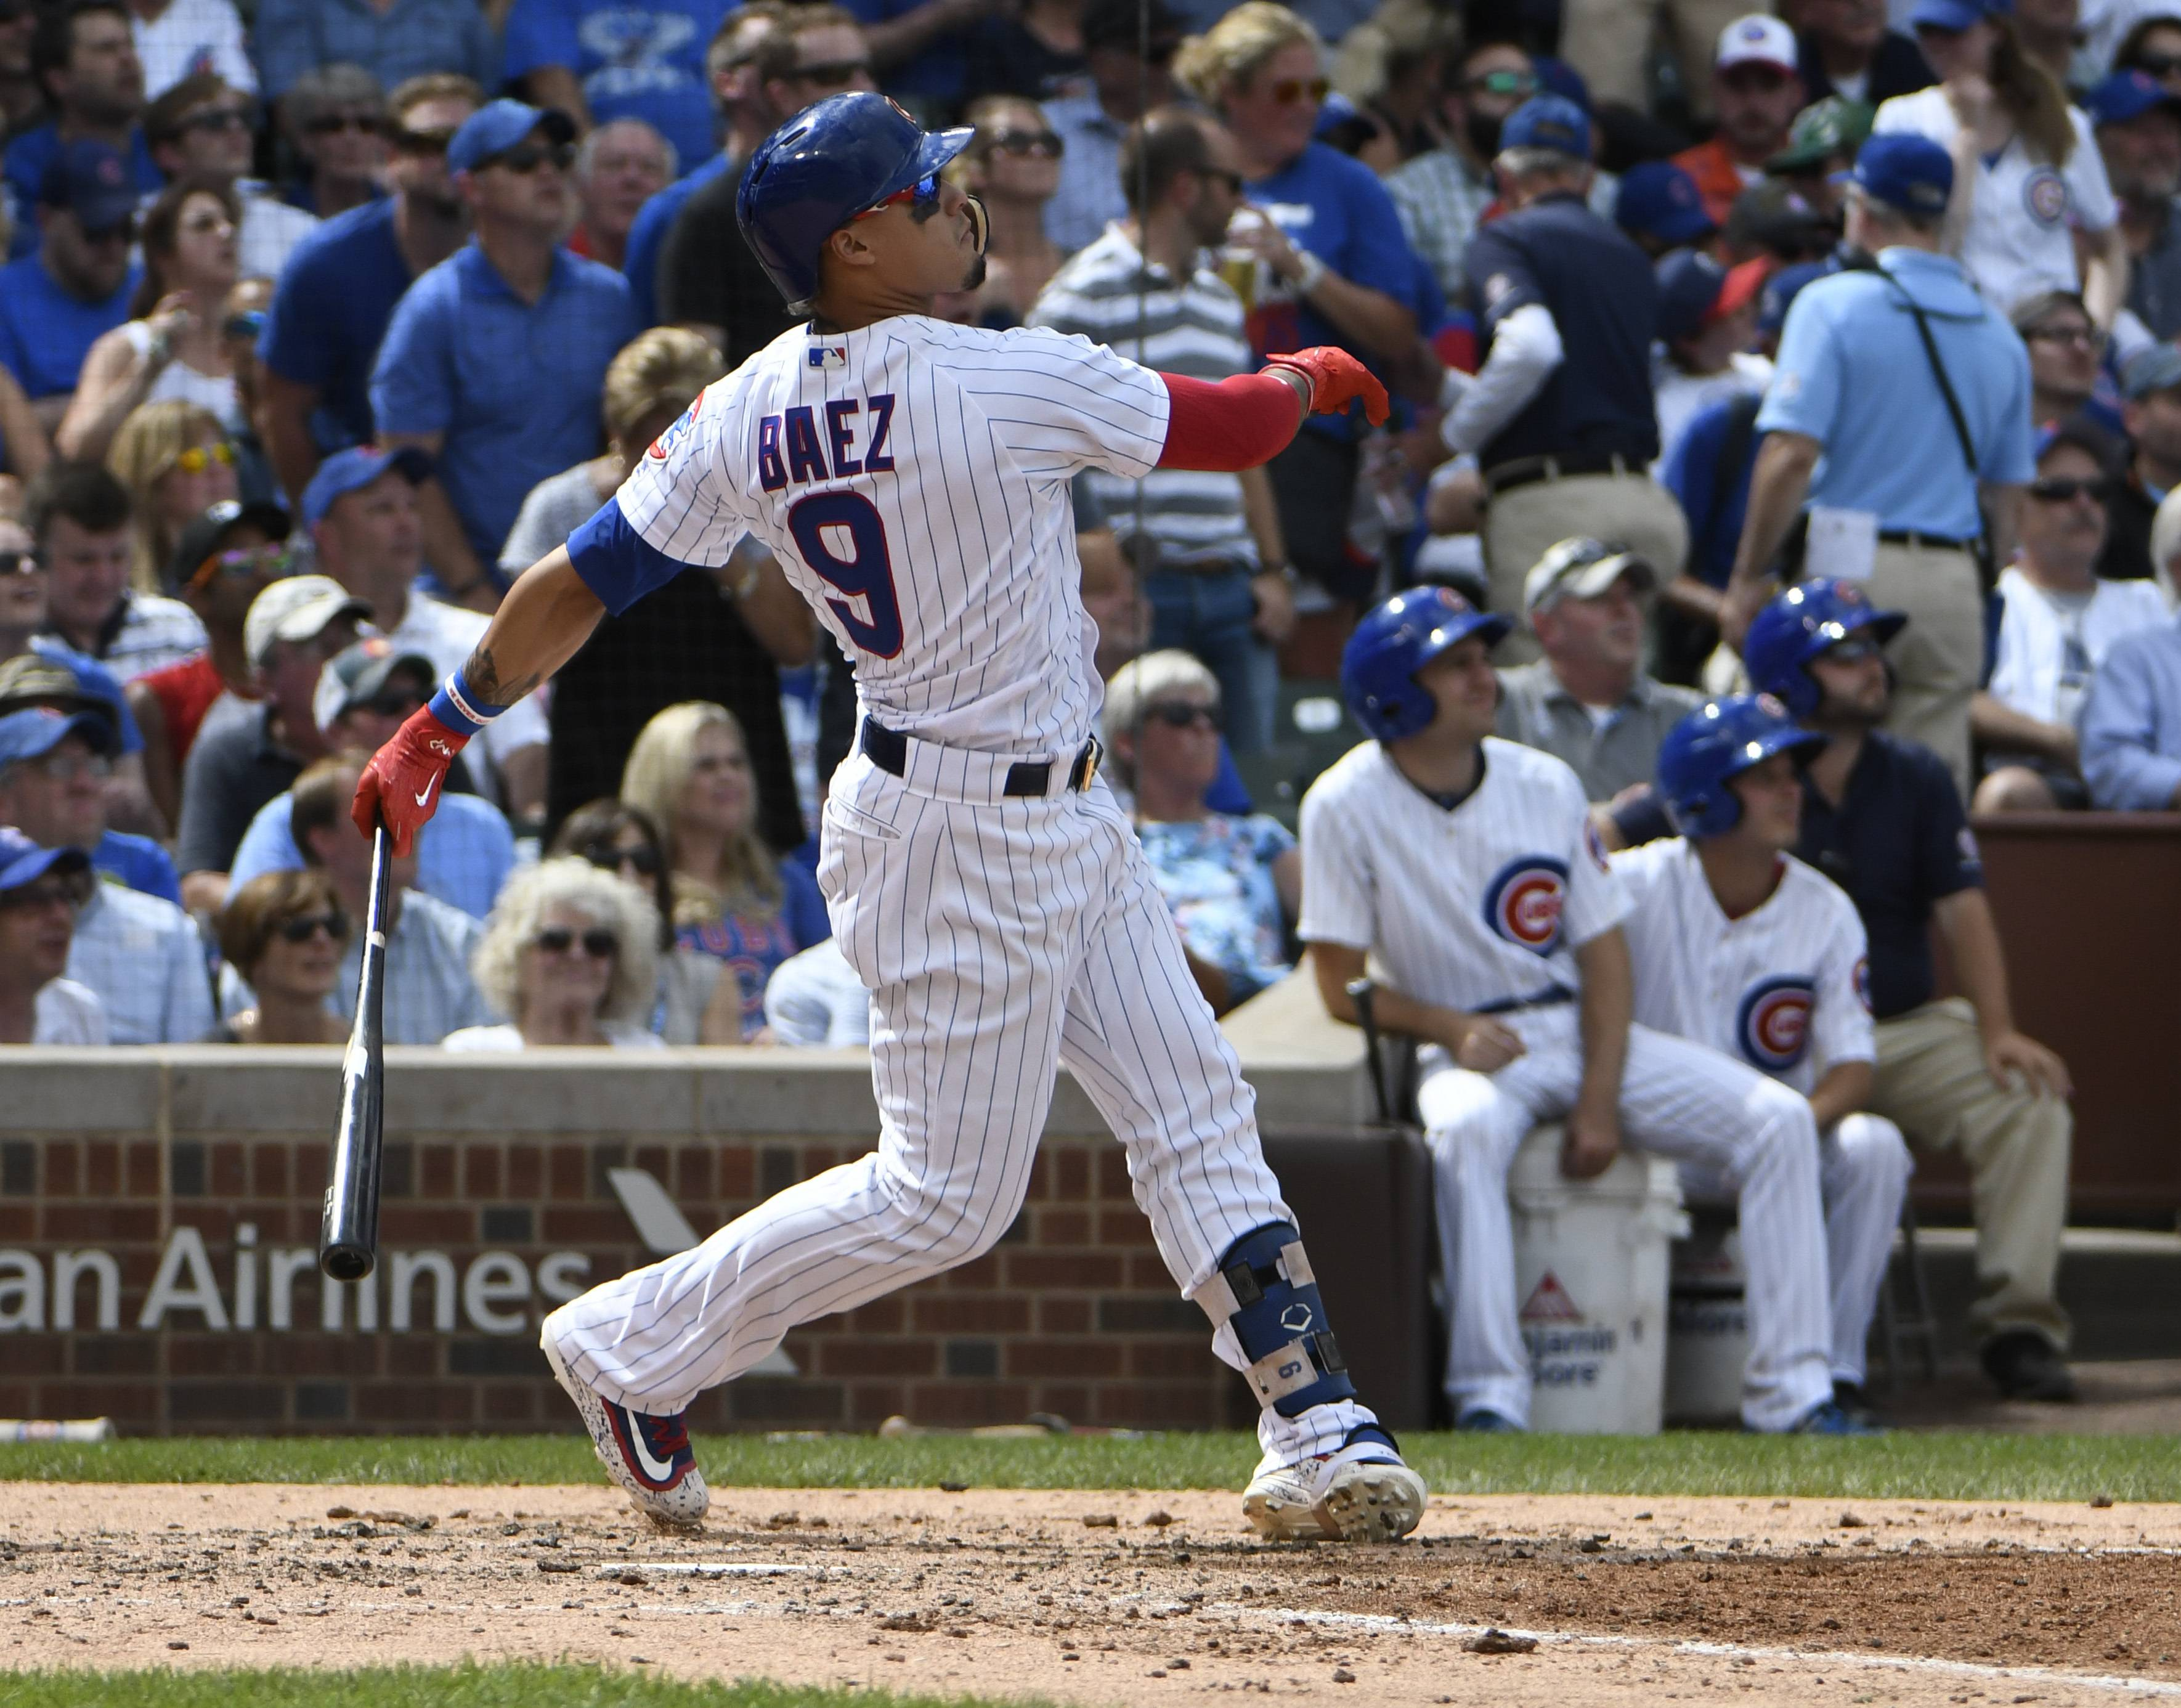 Serious money business awaits Cubs in coming days